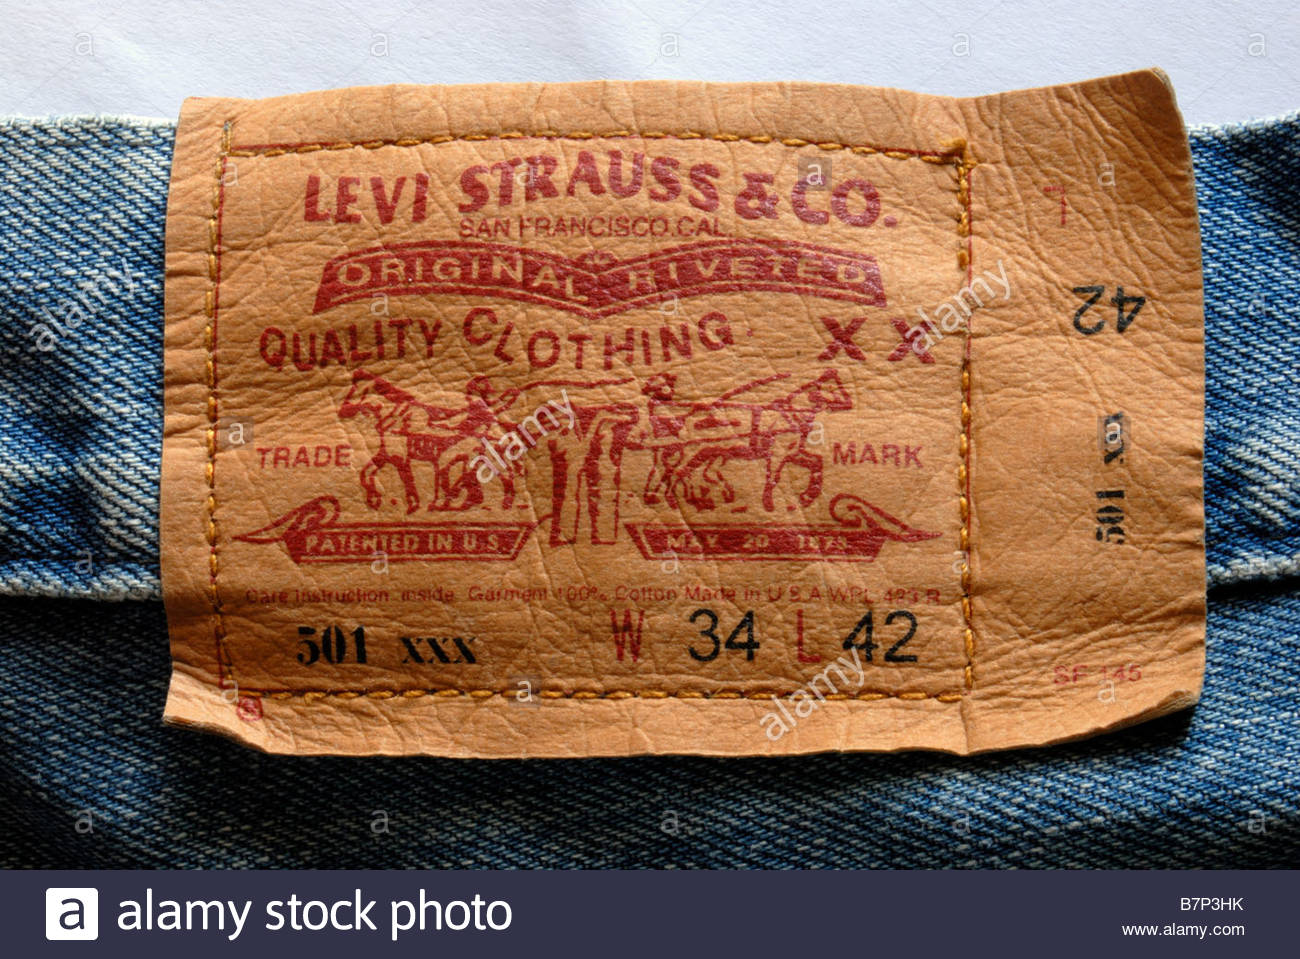 levi and strauss co You searched for: levi strauss and co etsy is the home to thousands of handmade, vintage, and one-of-a-kind products and gifts related to your search no matter what you're looking for or where you are in the world, our global marketplace of sellers can help you find unique and affordable options.